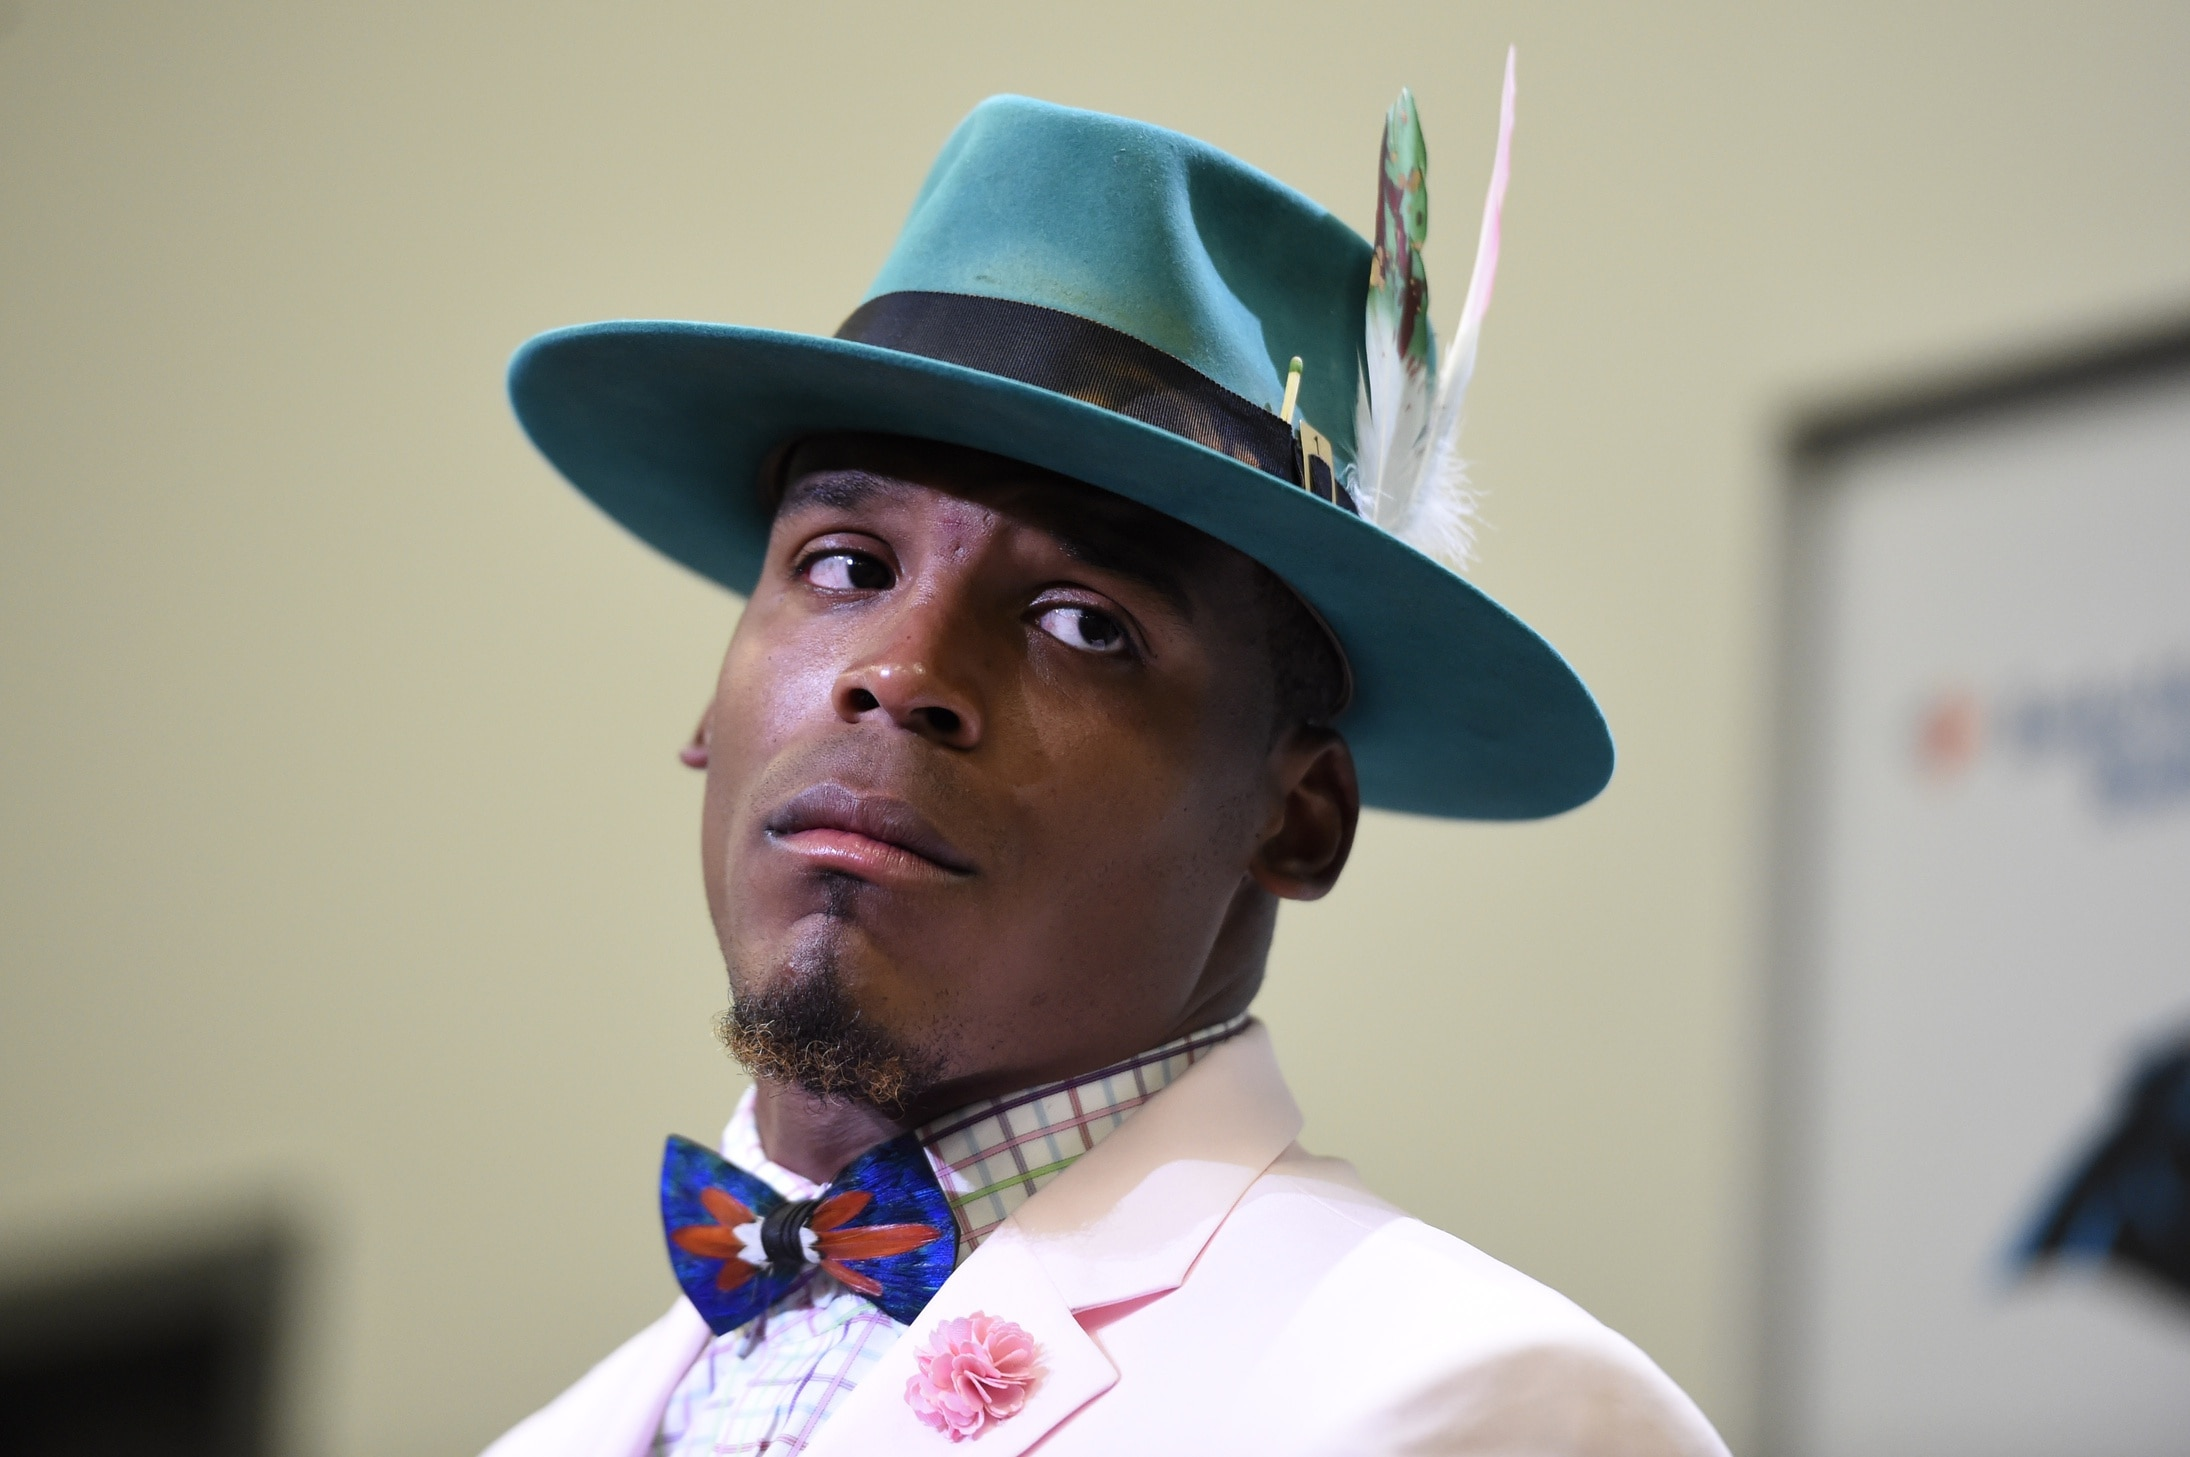 100% authentic 4d1f3 3ad9f Panthers teammate has hilarious take on Cam Newton's fashion ...